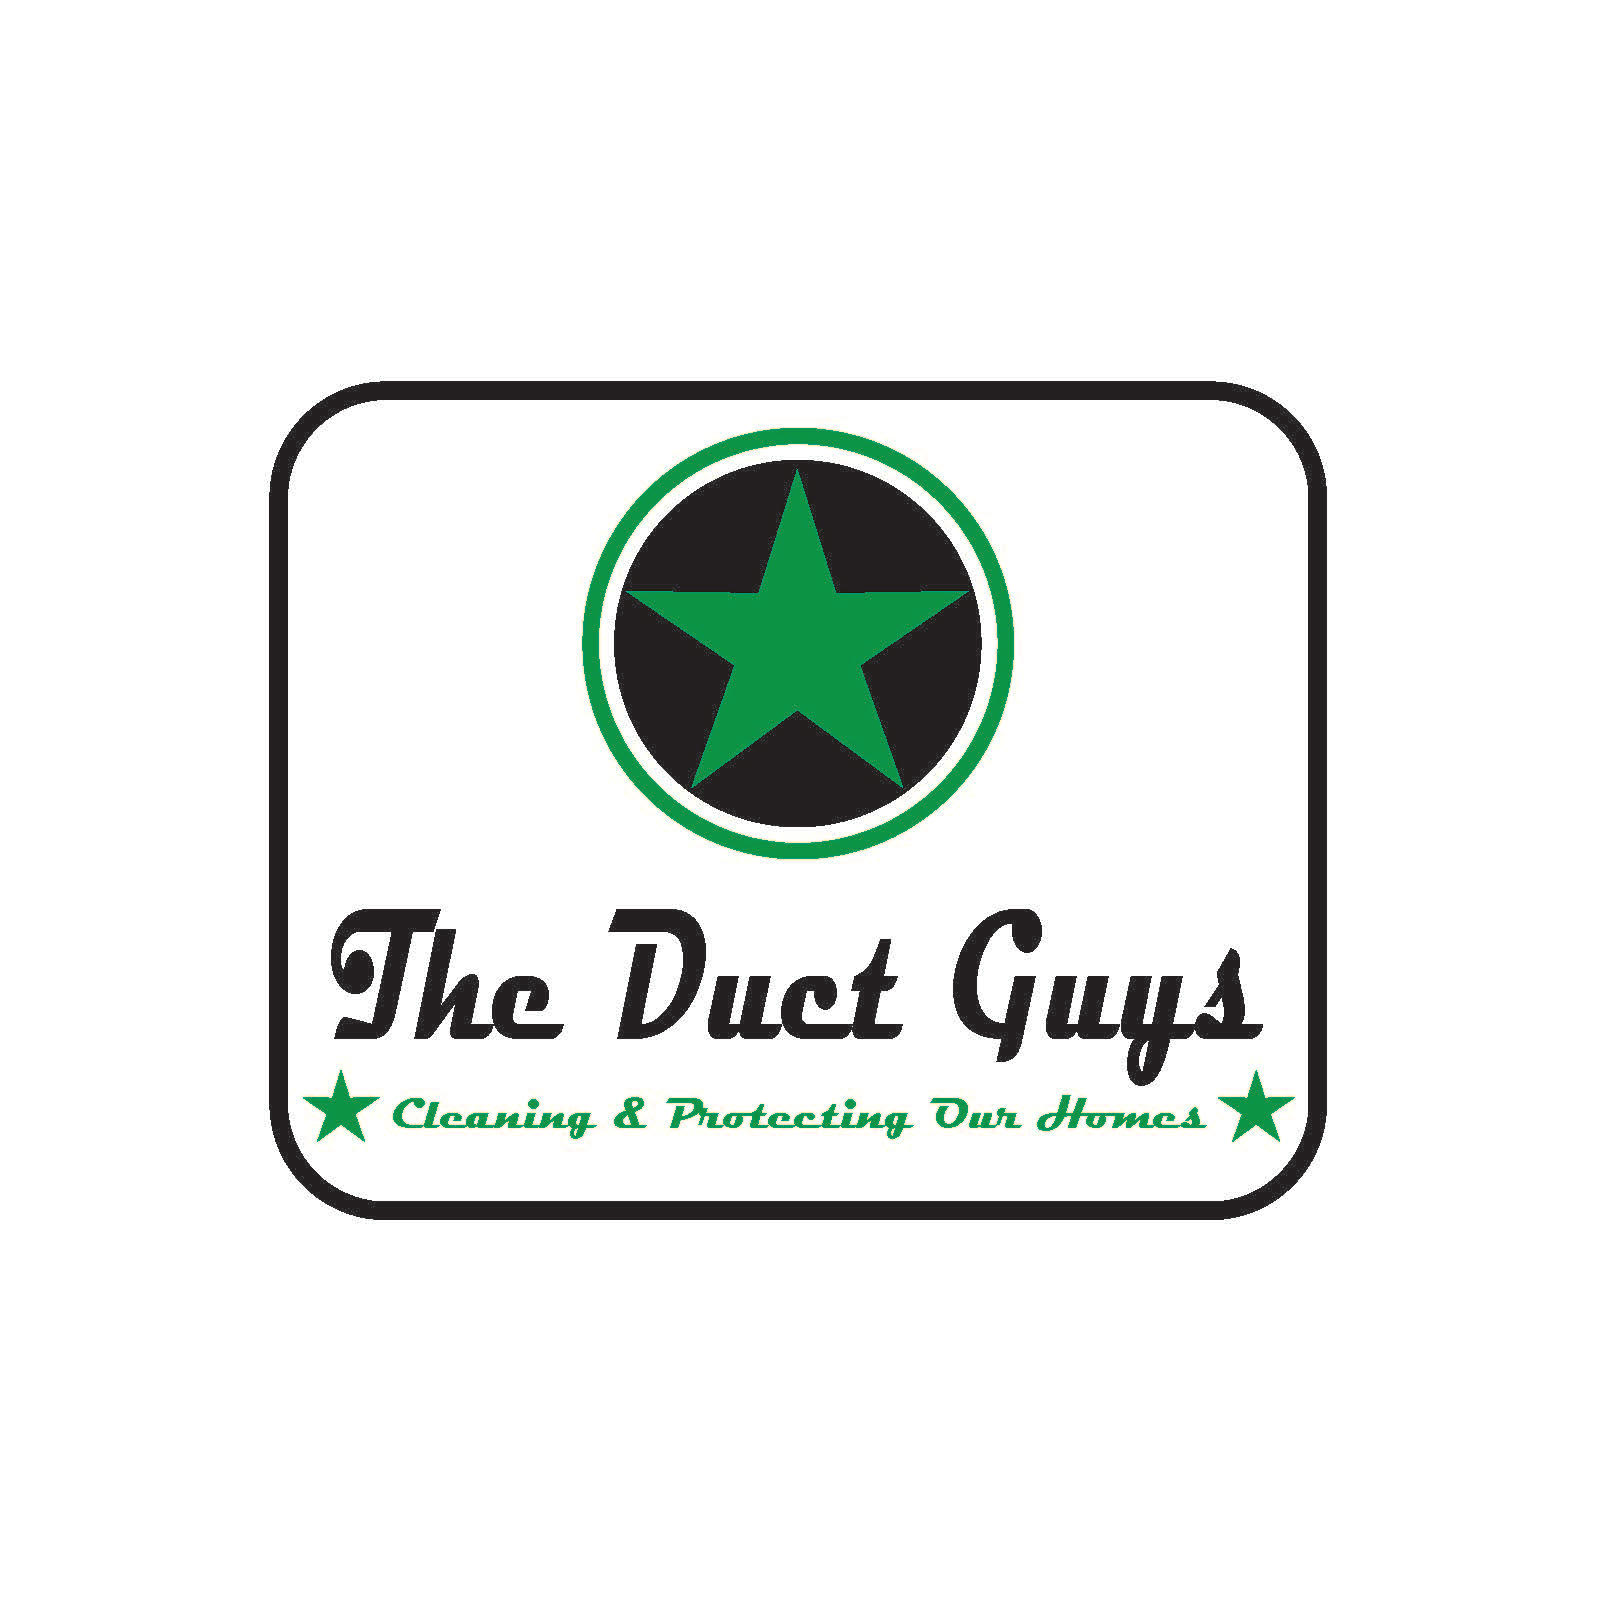 The Duct Guys LLC. logo